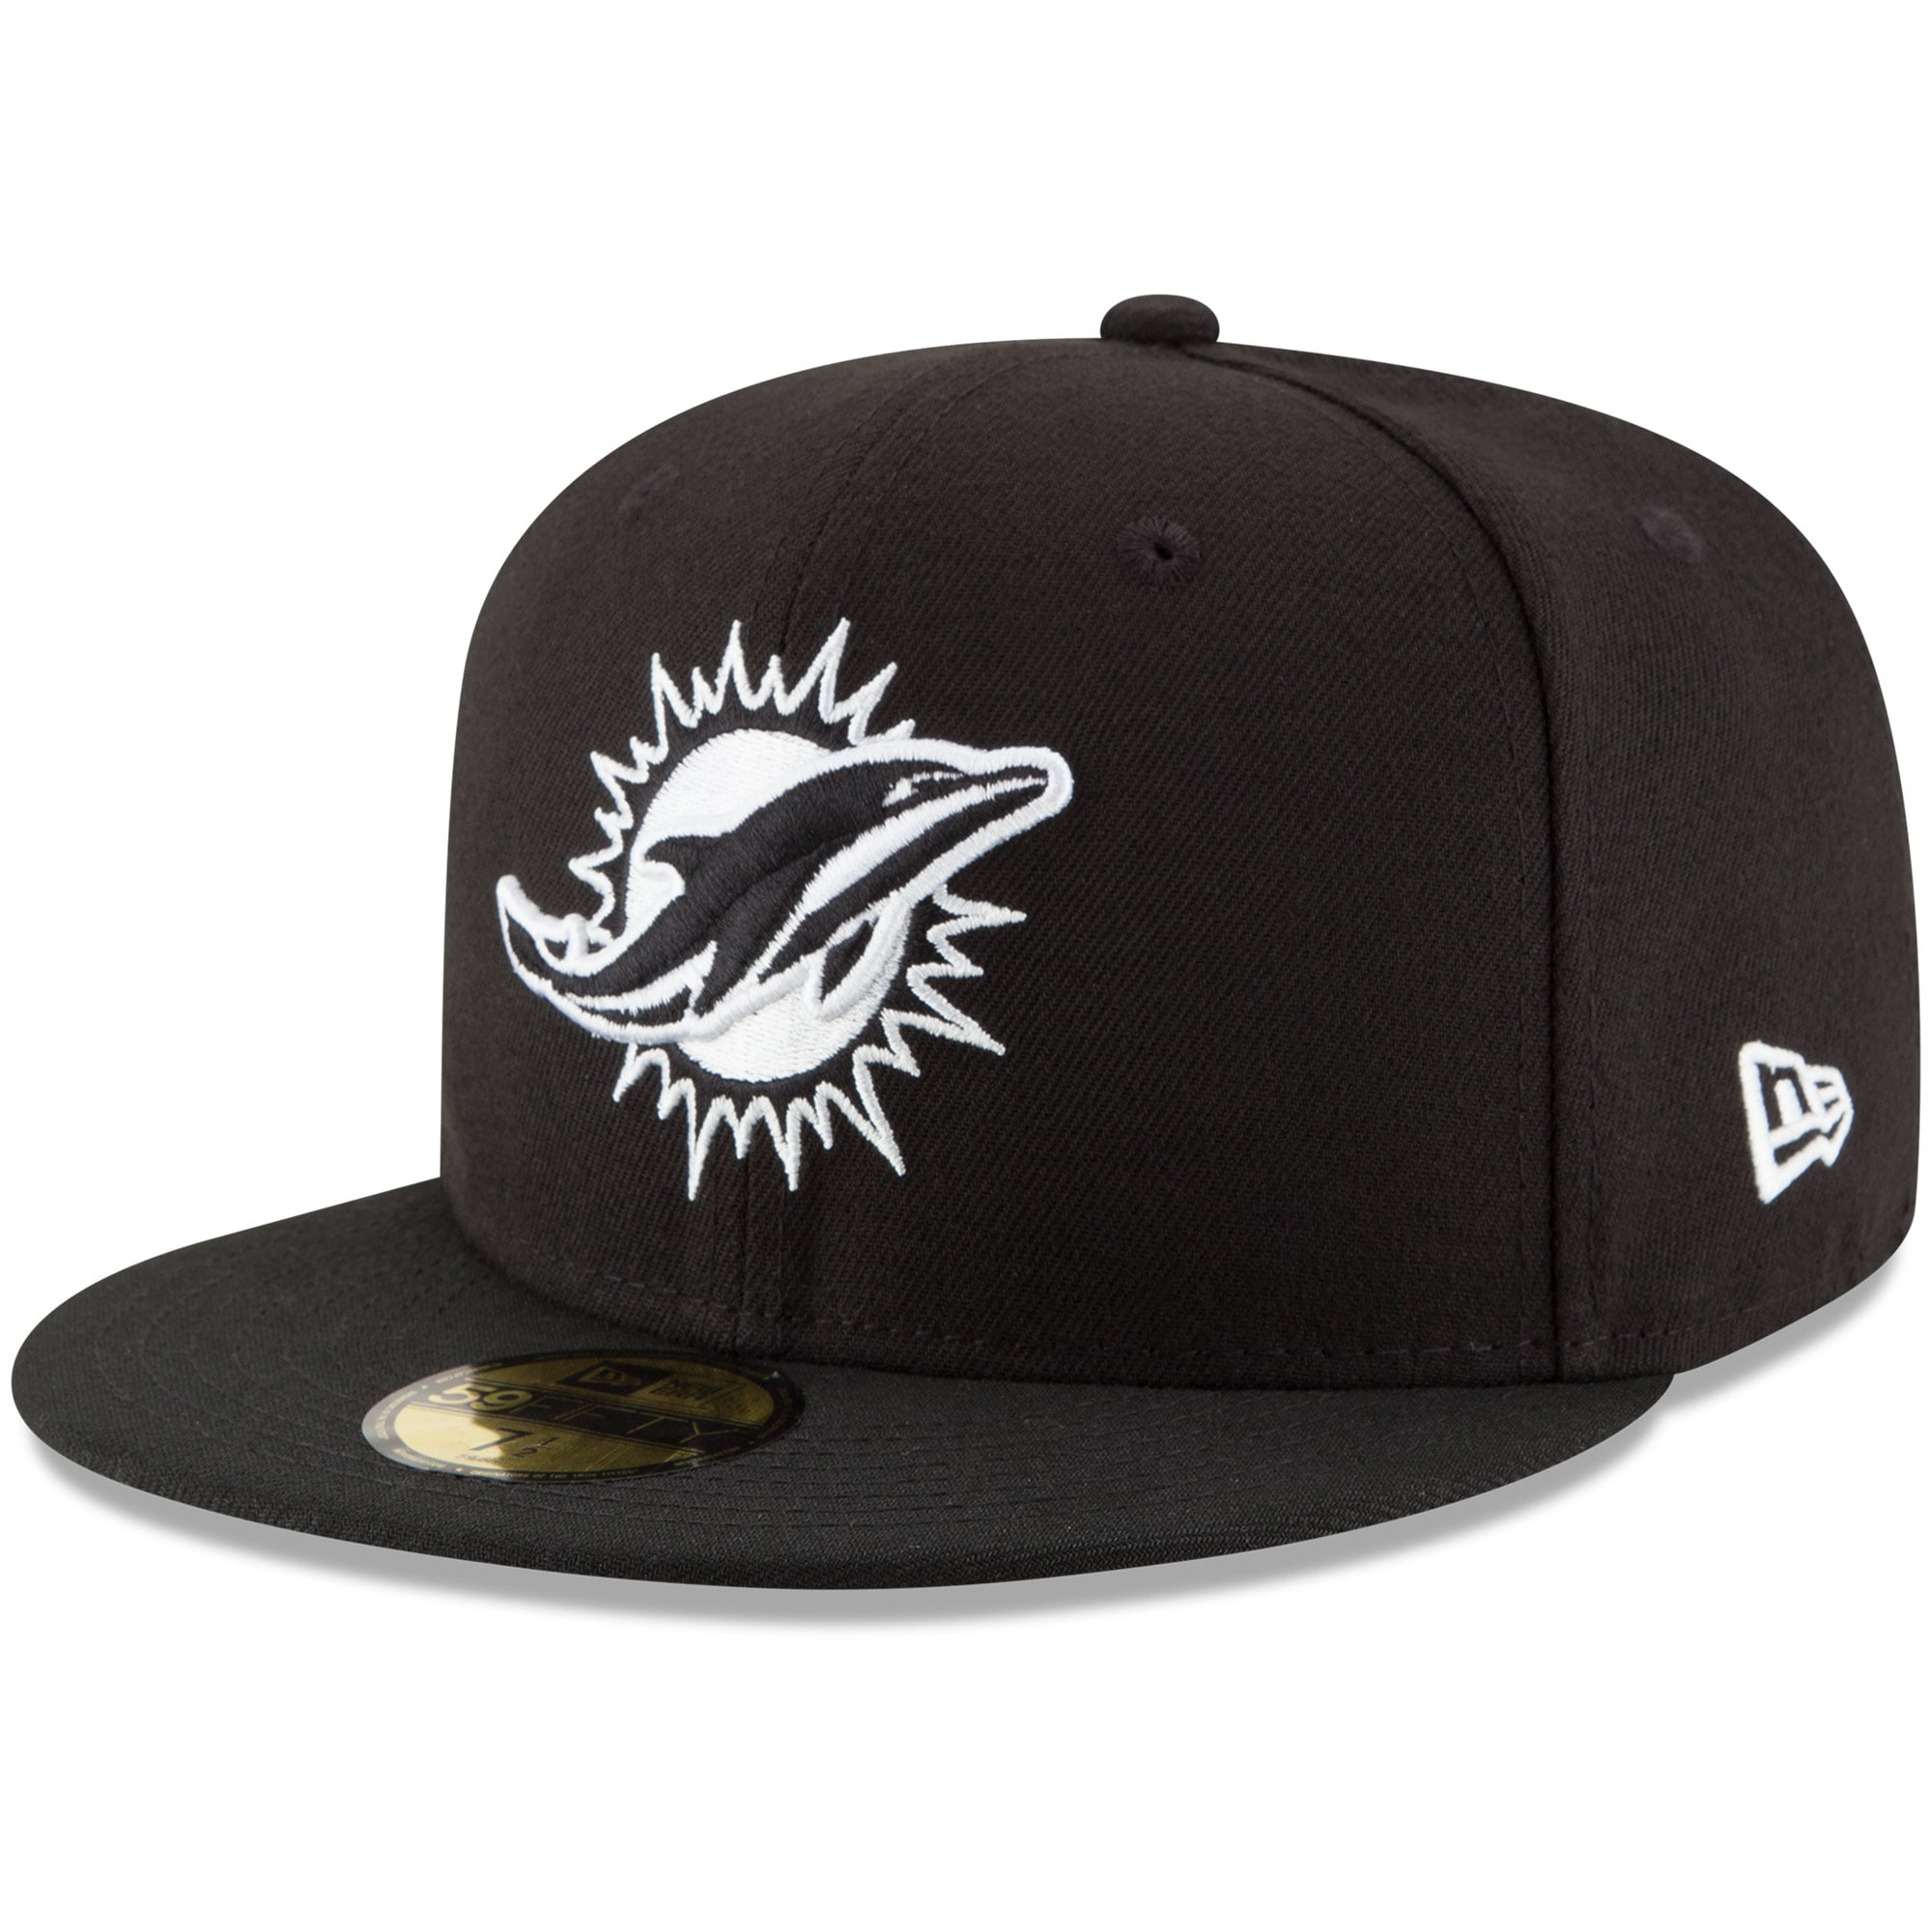 Miami Dolphins New Era B-Dub 59FIFTY Fitted Hat - Black